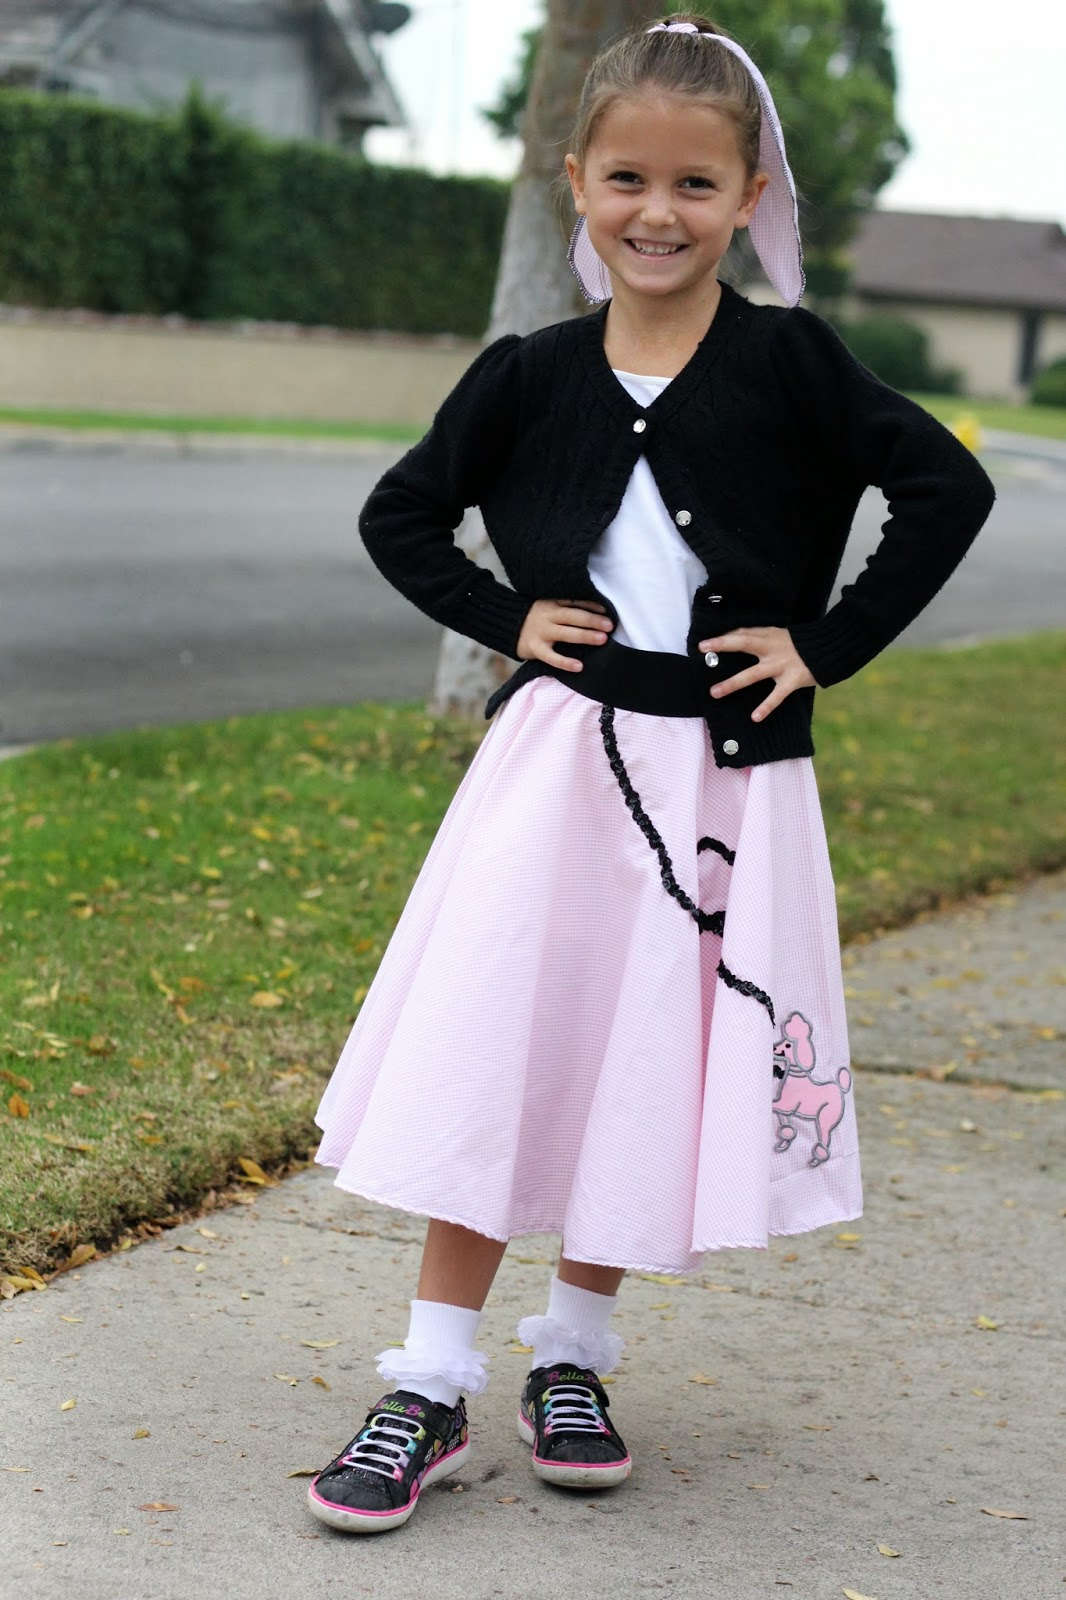 50s Attire | 50s Skirt | Boys 50s Attire